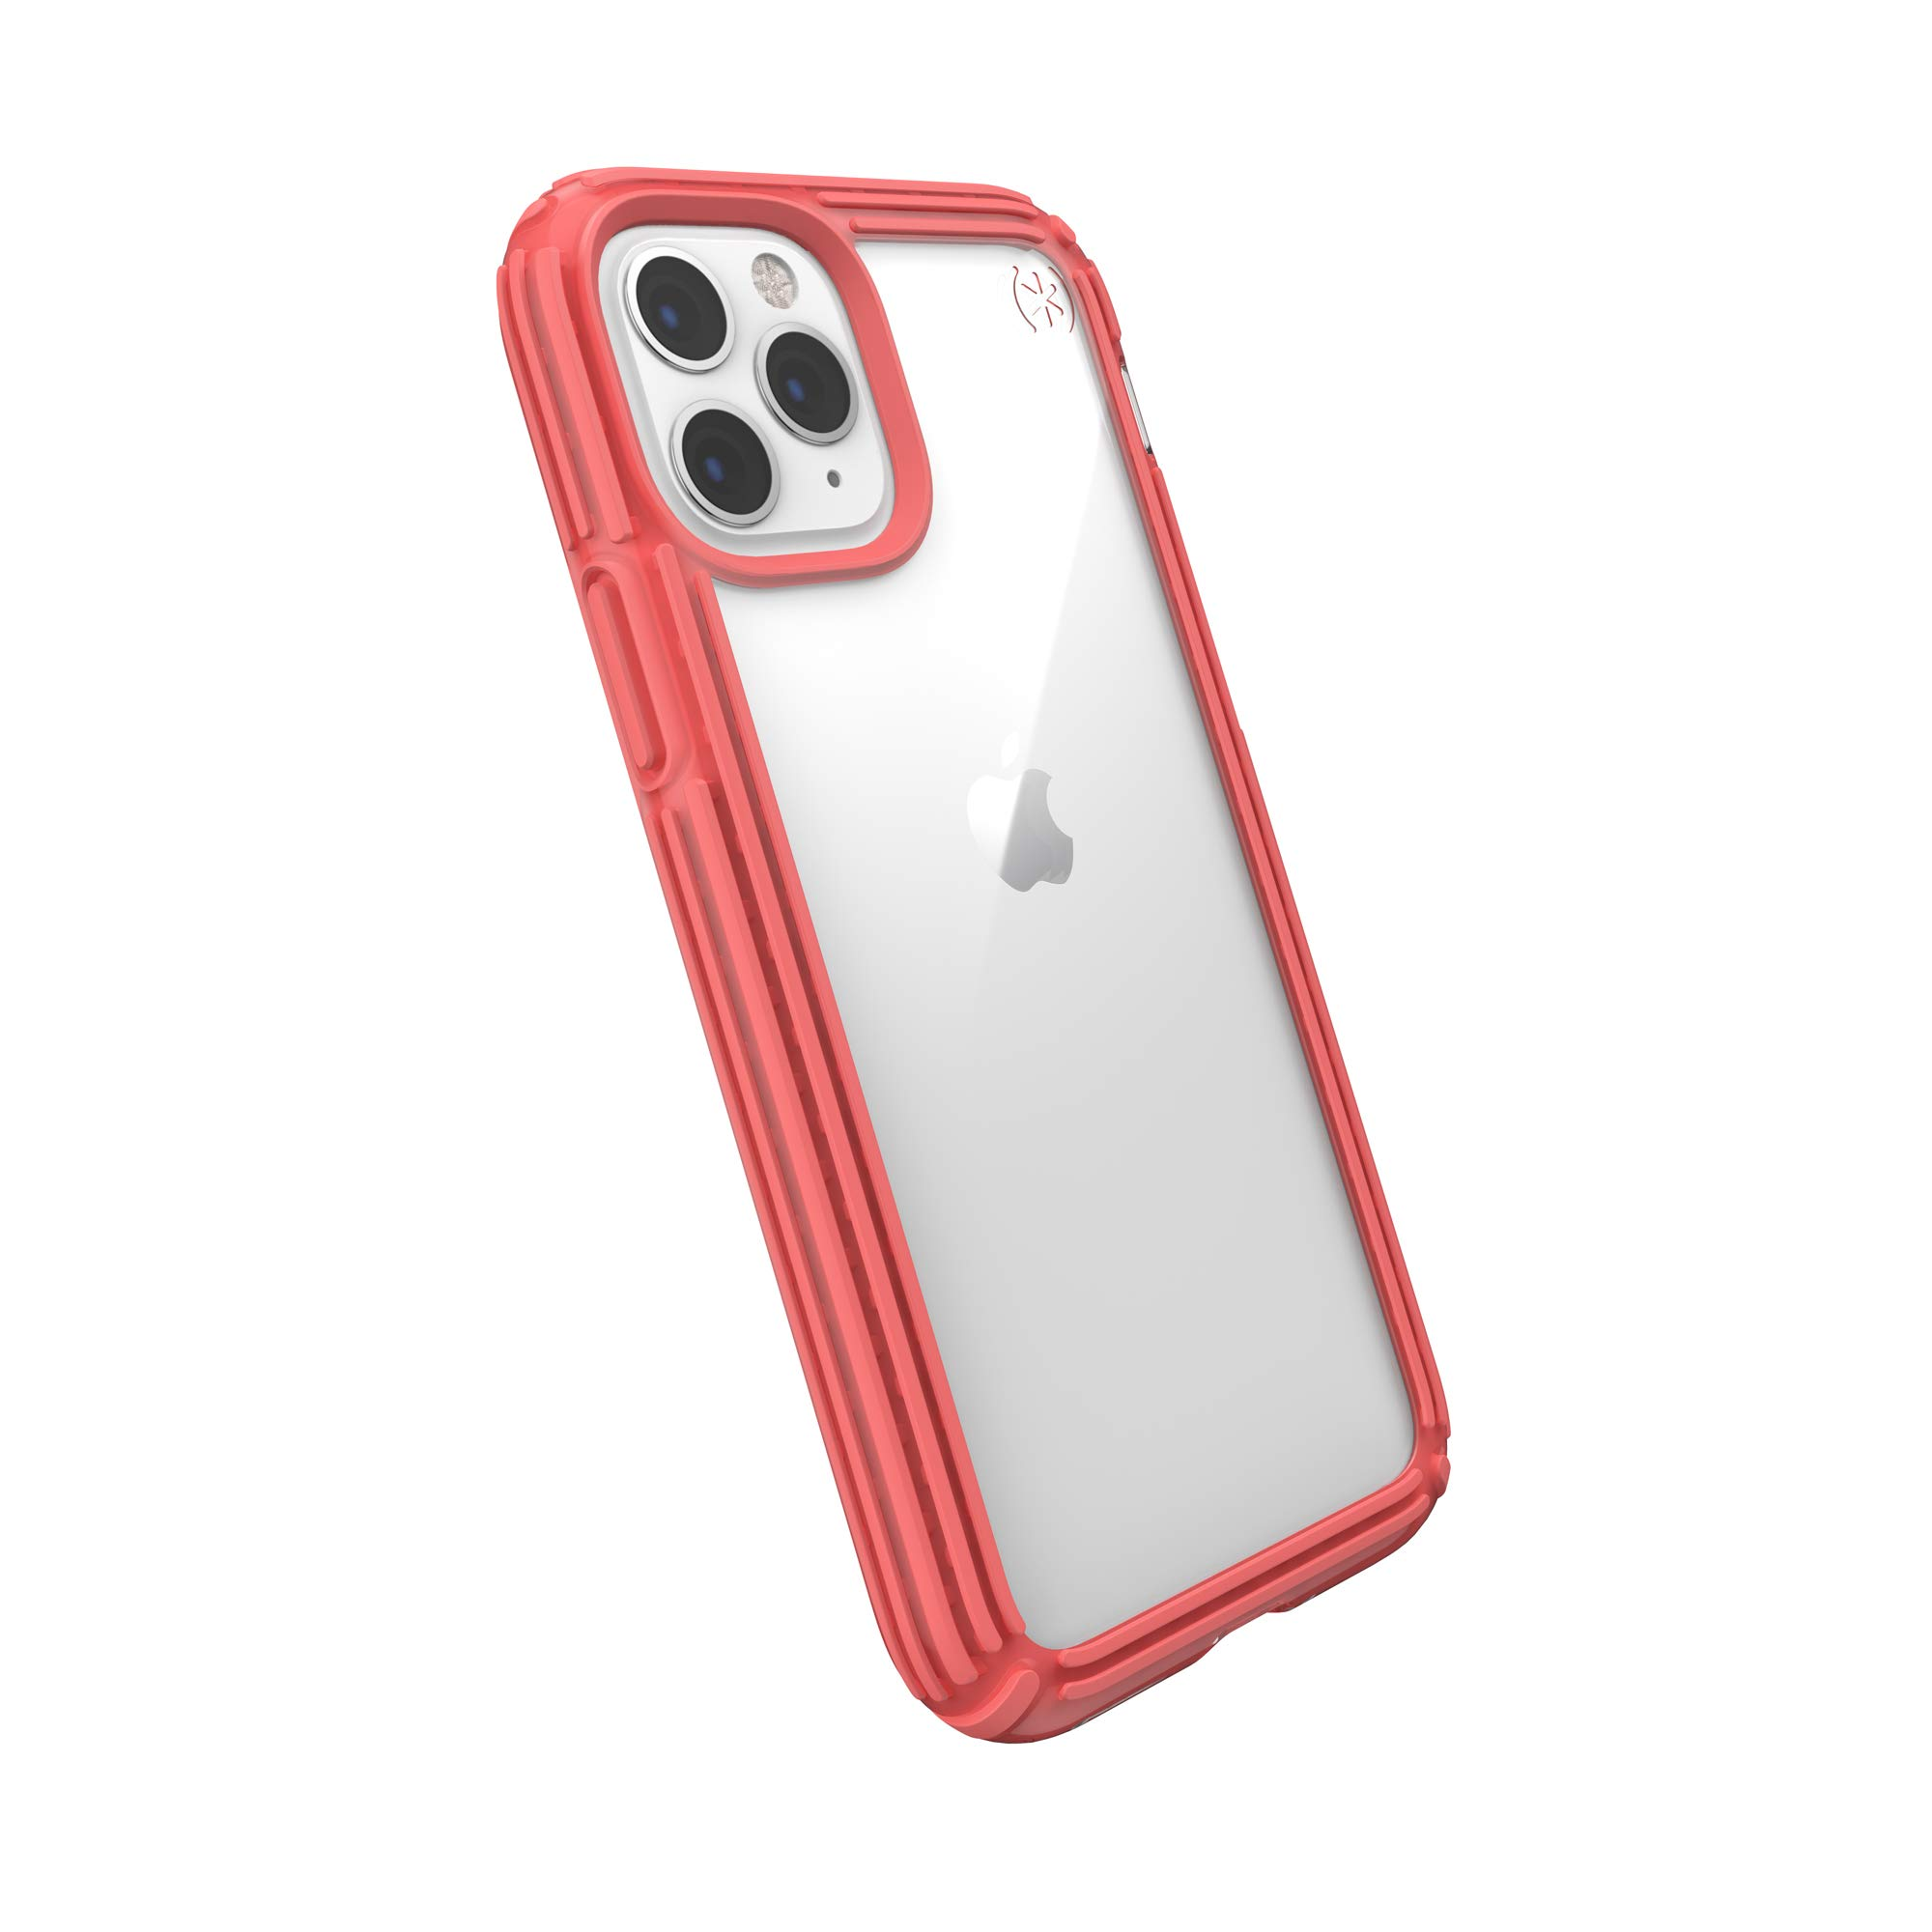 Speck Products Presidio V-Grip iPhone 11 Pro Case, Clear/Parrot Pink, Model:129902-8530